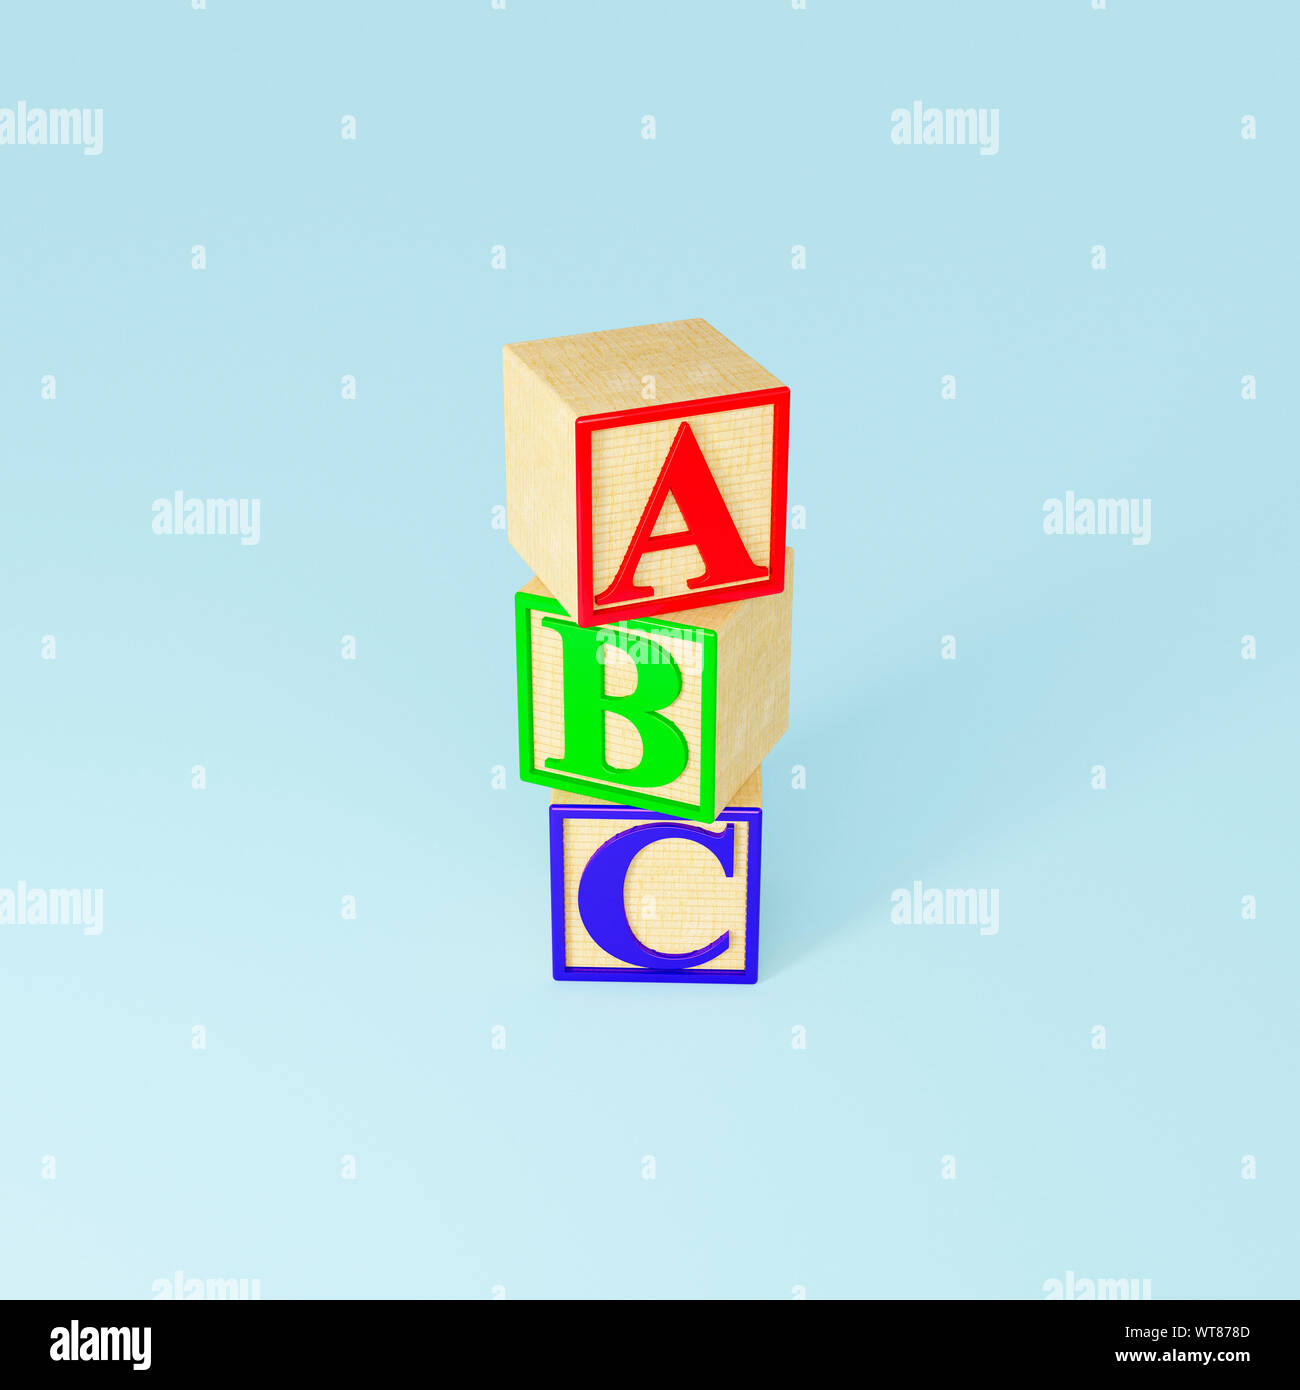 Childrens wooden toys, wooden ABC blocks Stock Photo